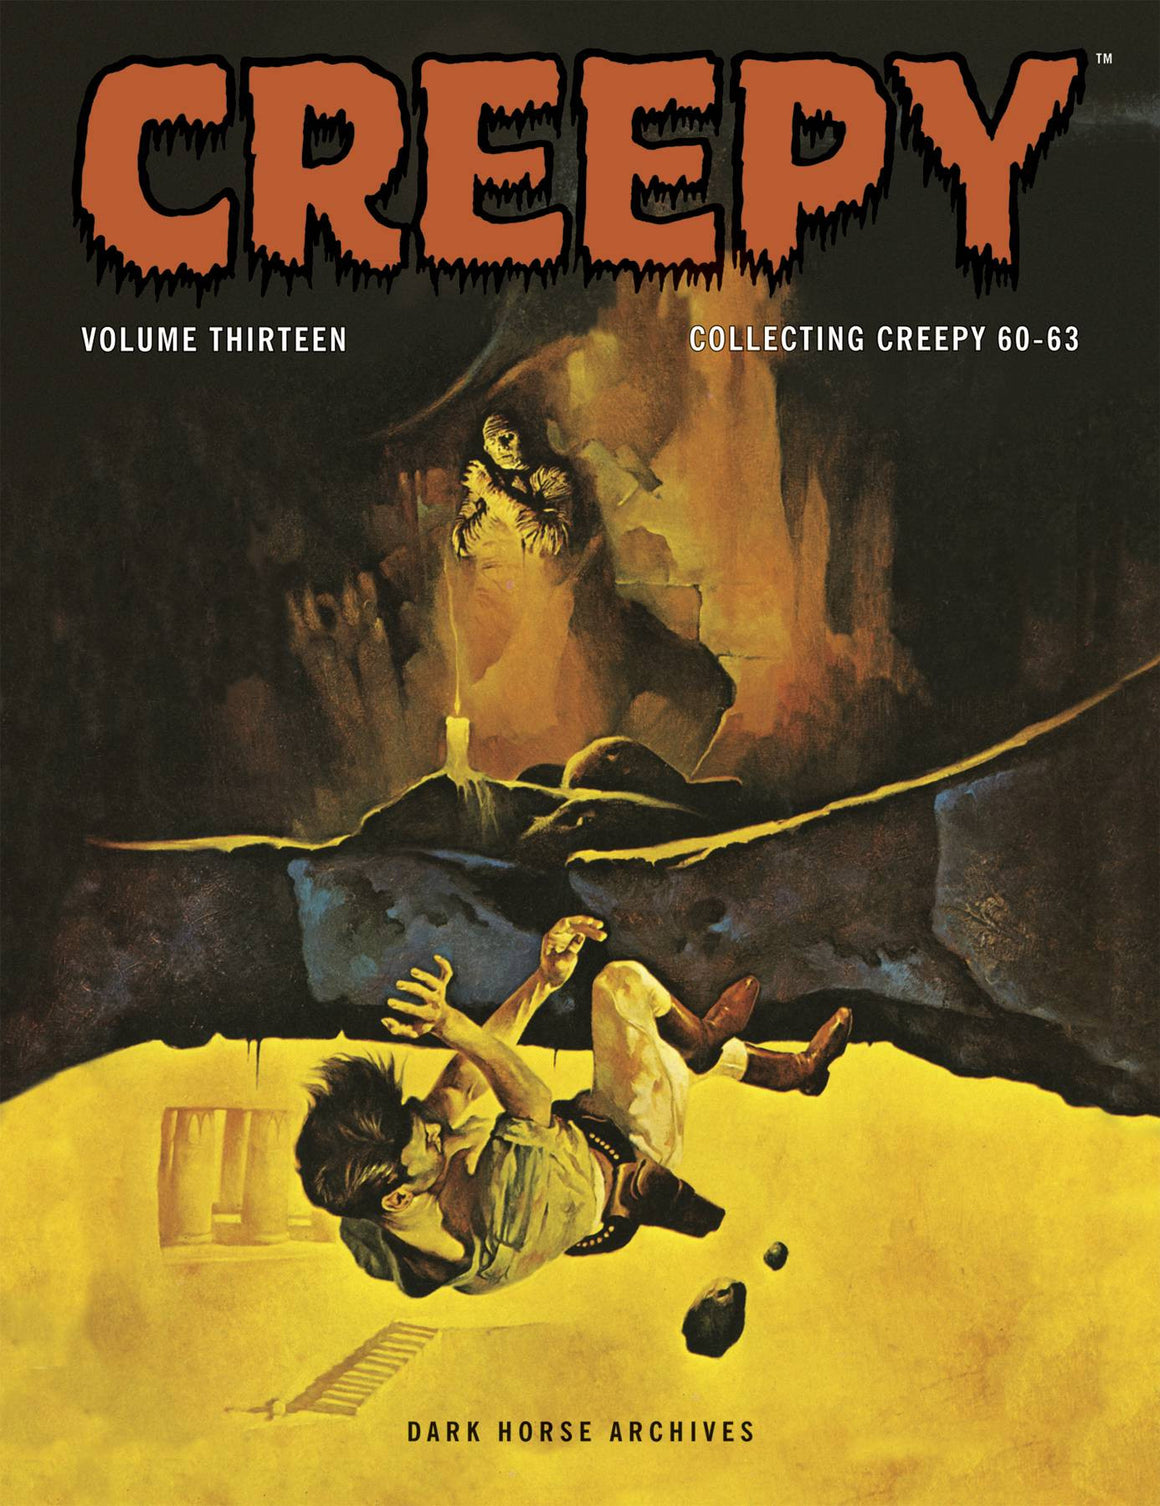 Creepy Archives Vol 13